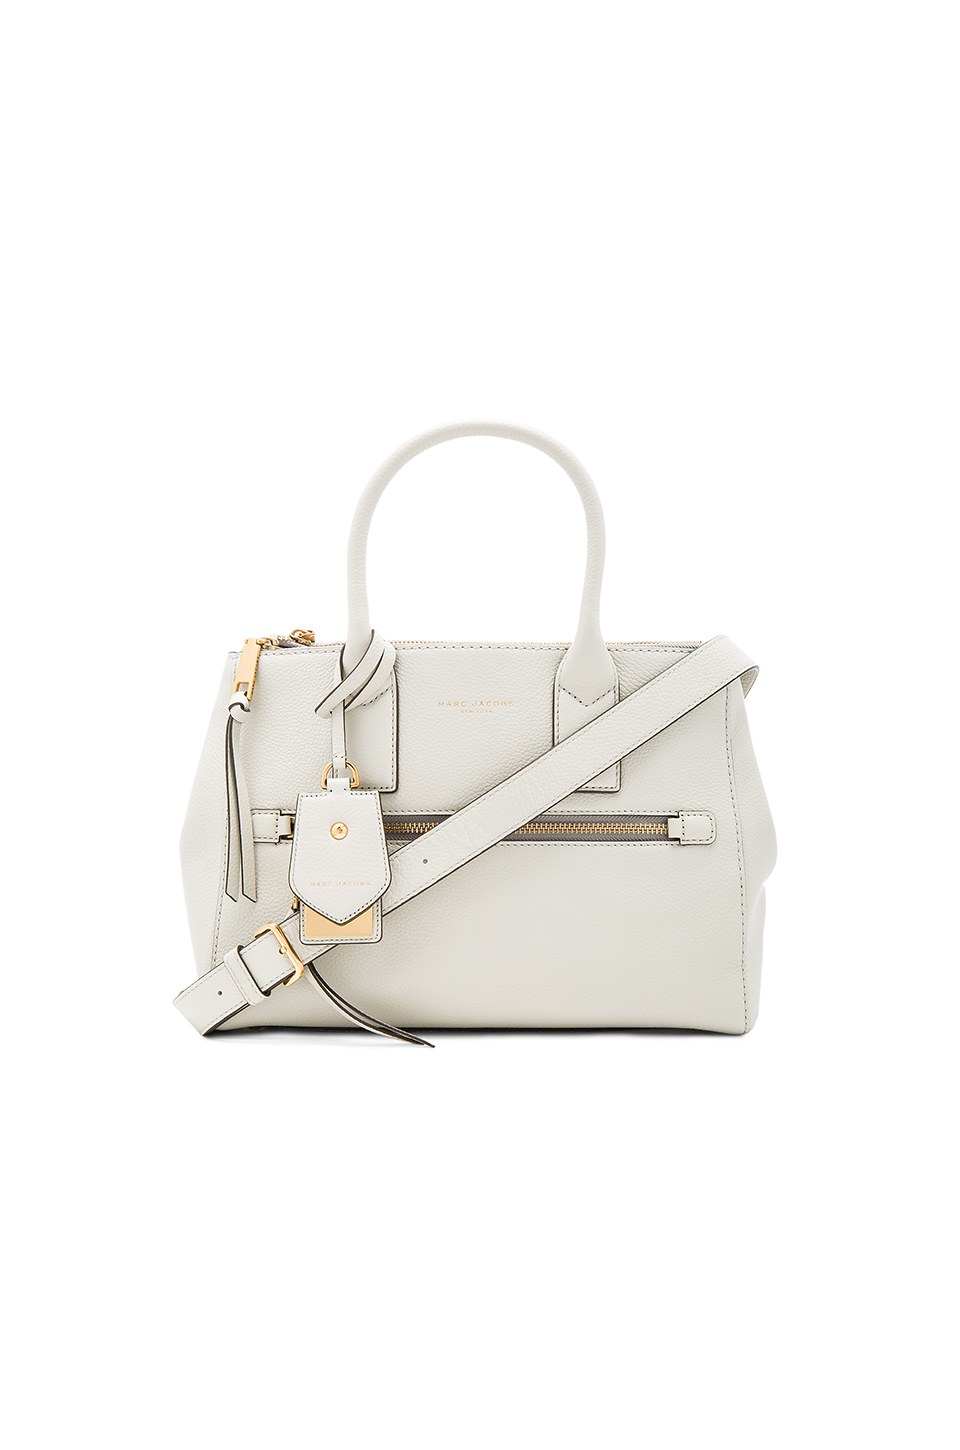 233bed0bdb33 Marc Jacobs Recruit E W Tote Bag In Nude   Neutrals